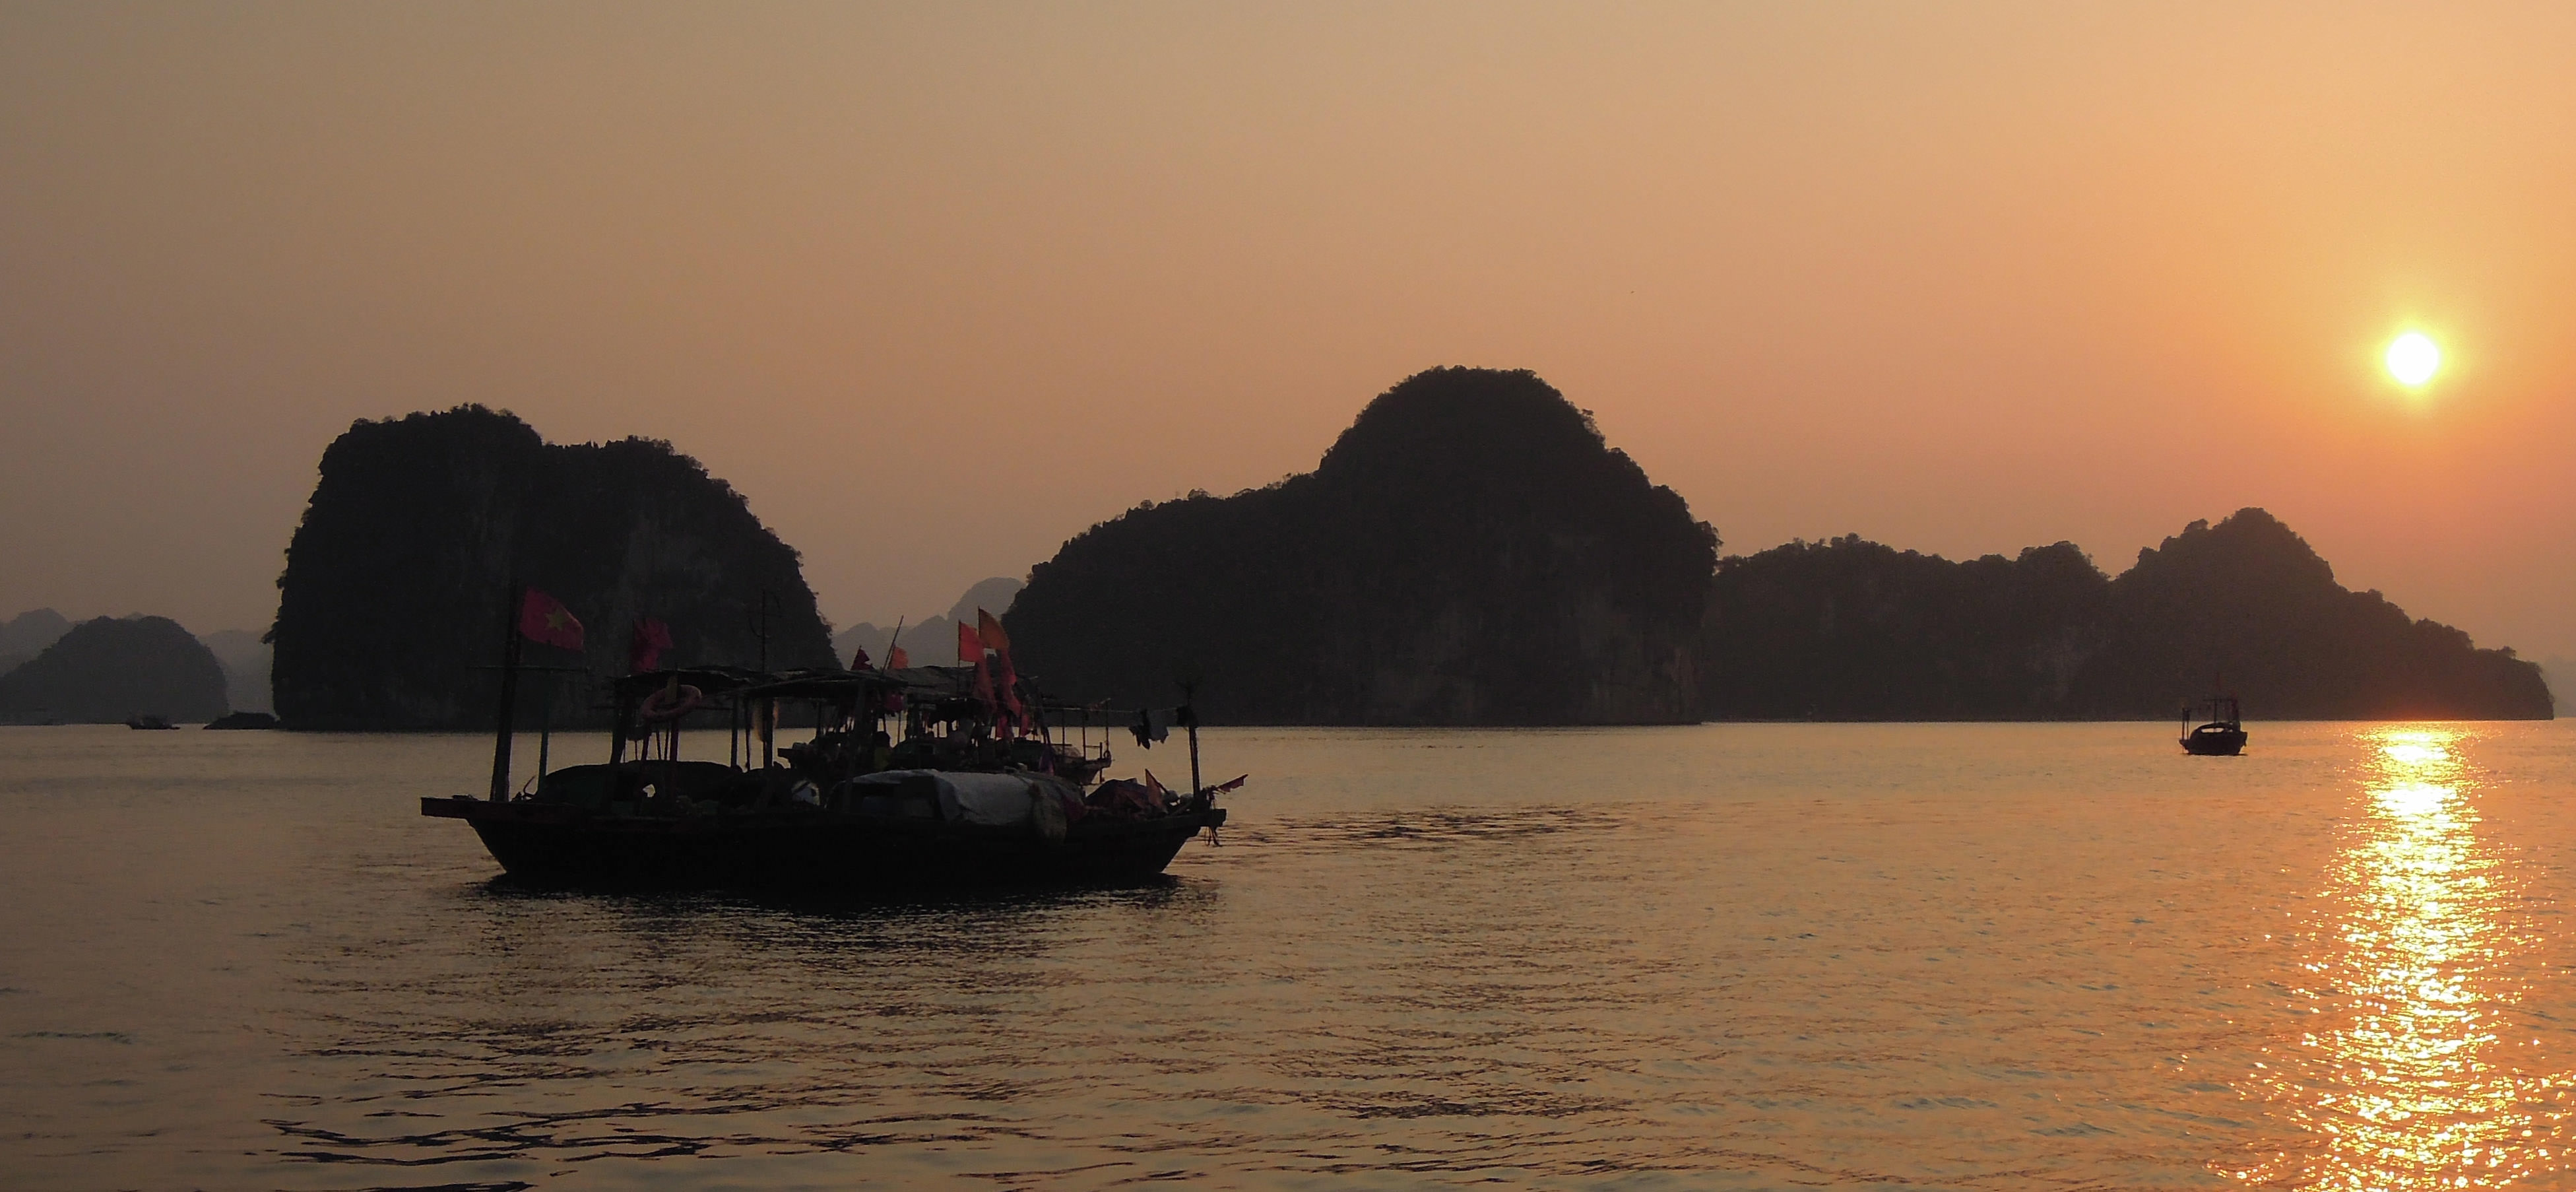 Dag 12, Vertrek uit Ha Long Bay / 'Sit or Sleep'?